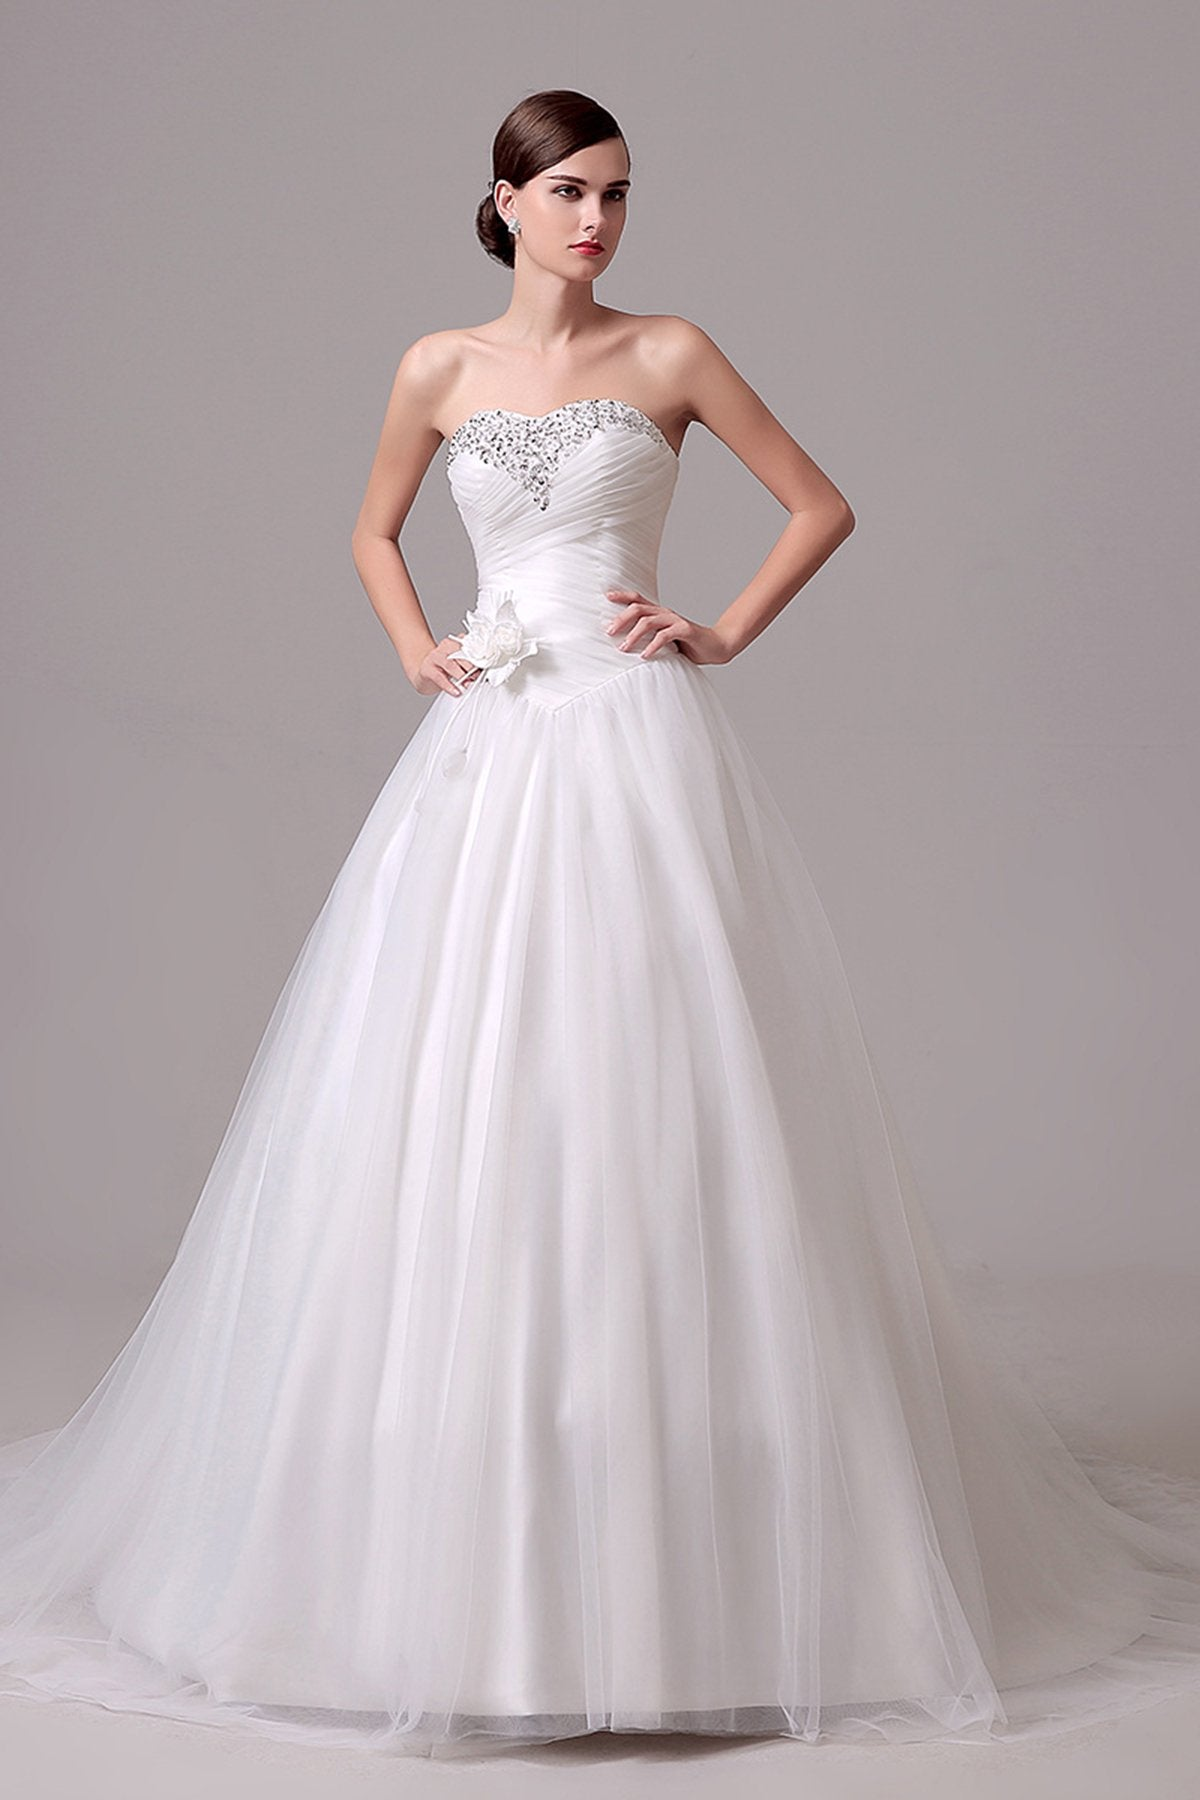 Ruched Beaded Strapless Wedding Dress Wedding Dress US2 Ivory